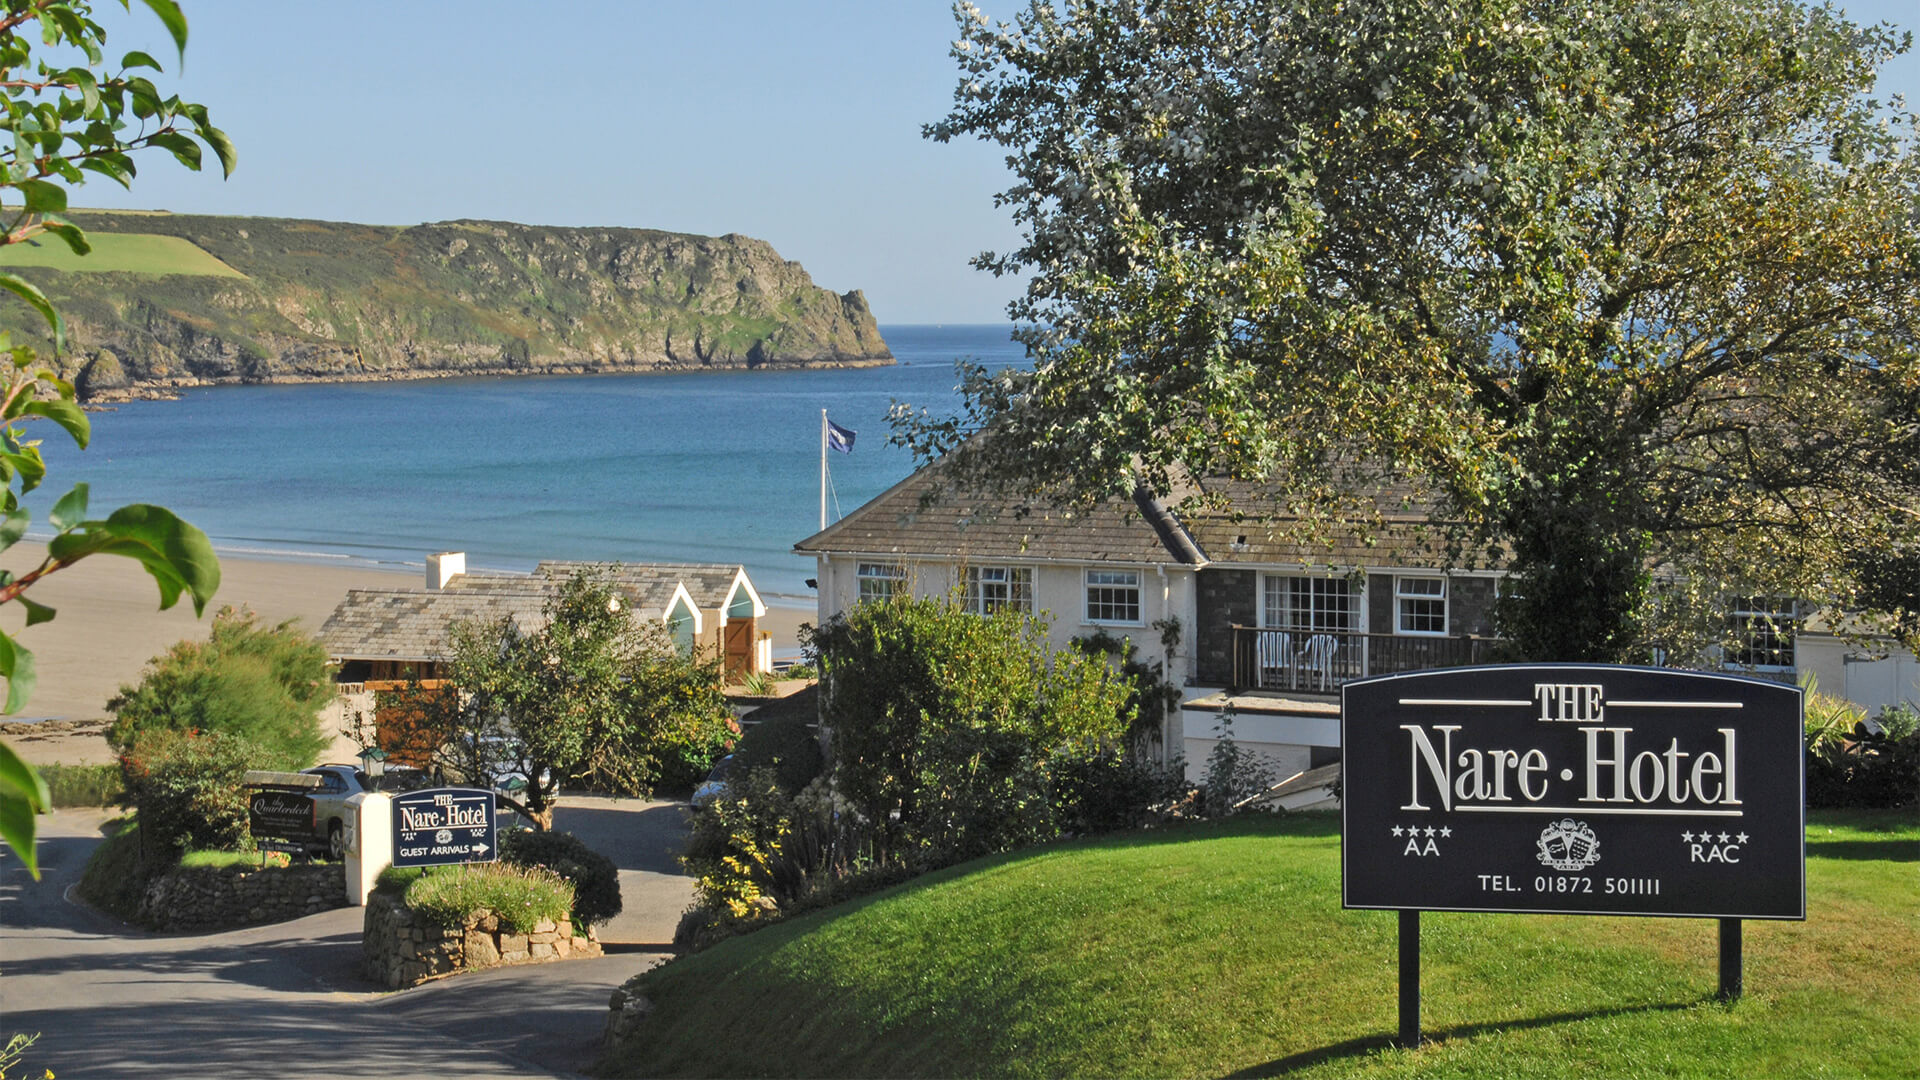 Luxury Family-Friendly GolfSpa Hotels In Cornwall advise